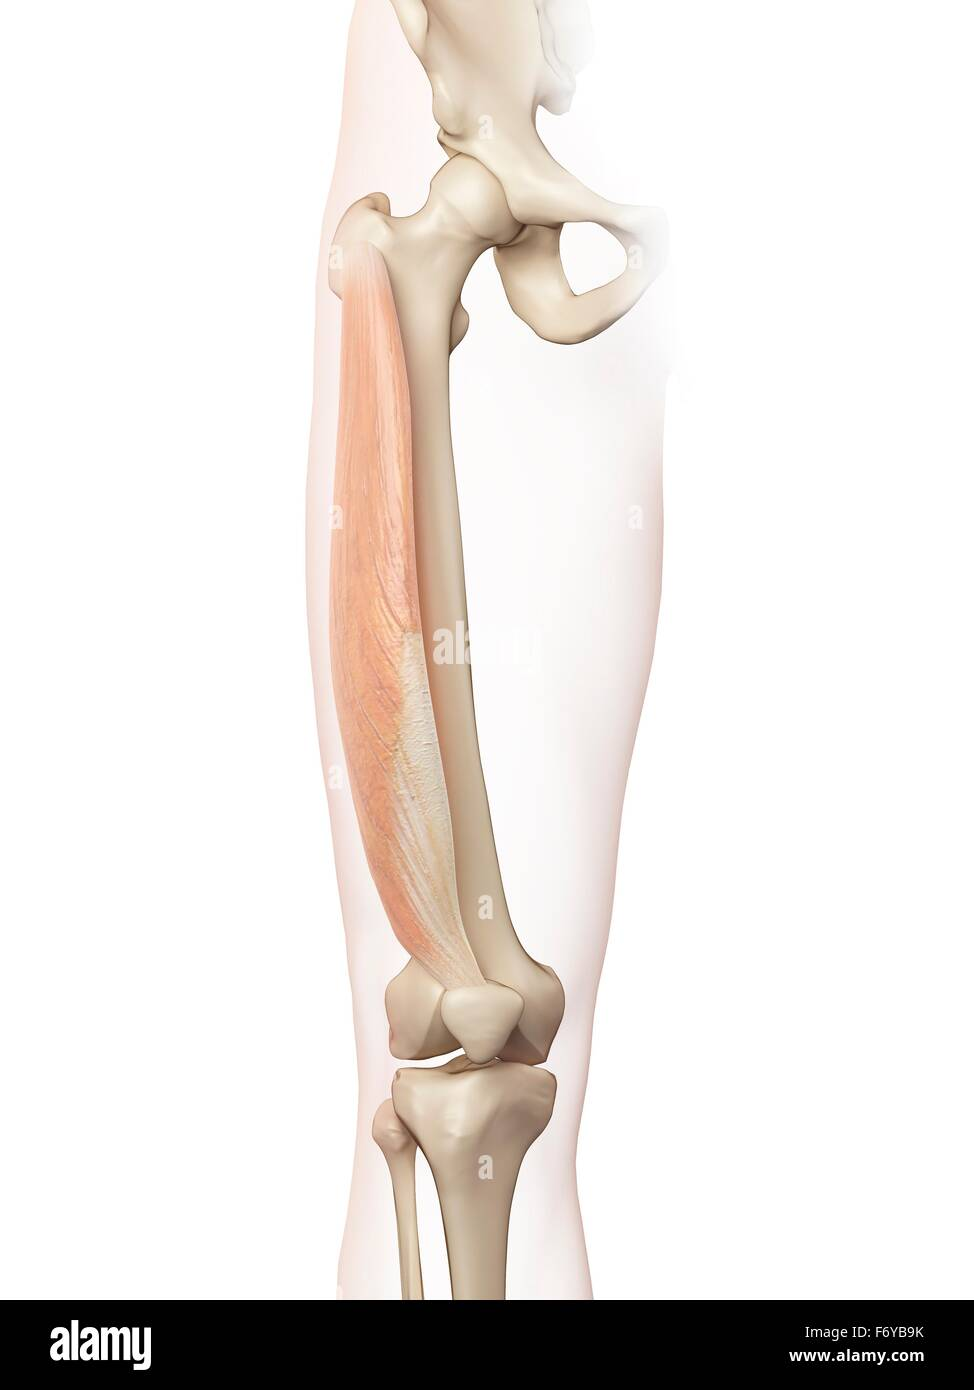 Human Thigh Muscles Computer Illustration Stock Photo 90341375 Alamy